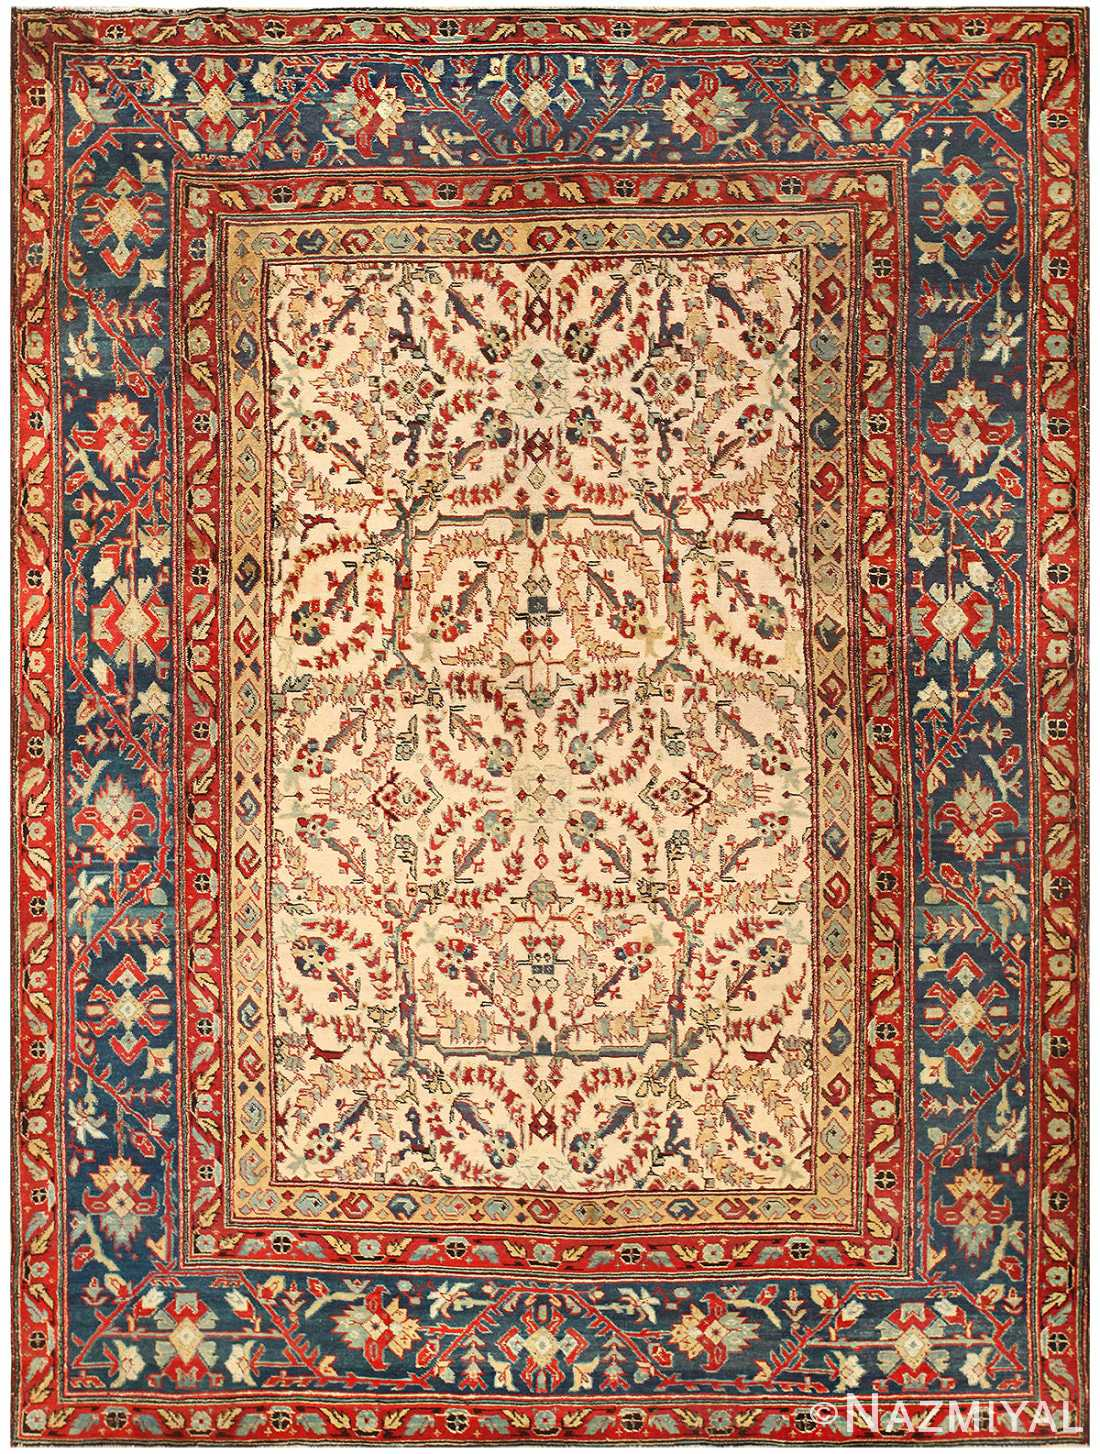 Antique Indian Agra Rug 50220 Detail/Large View